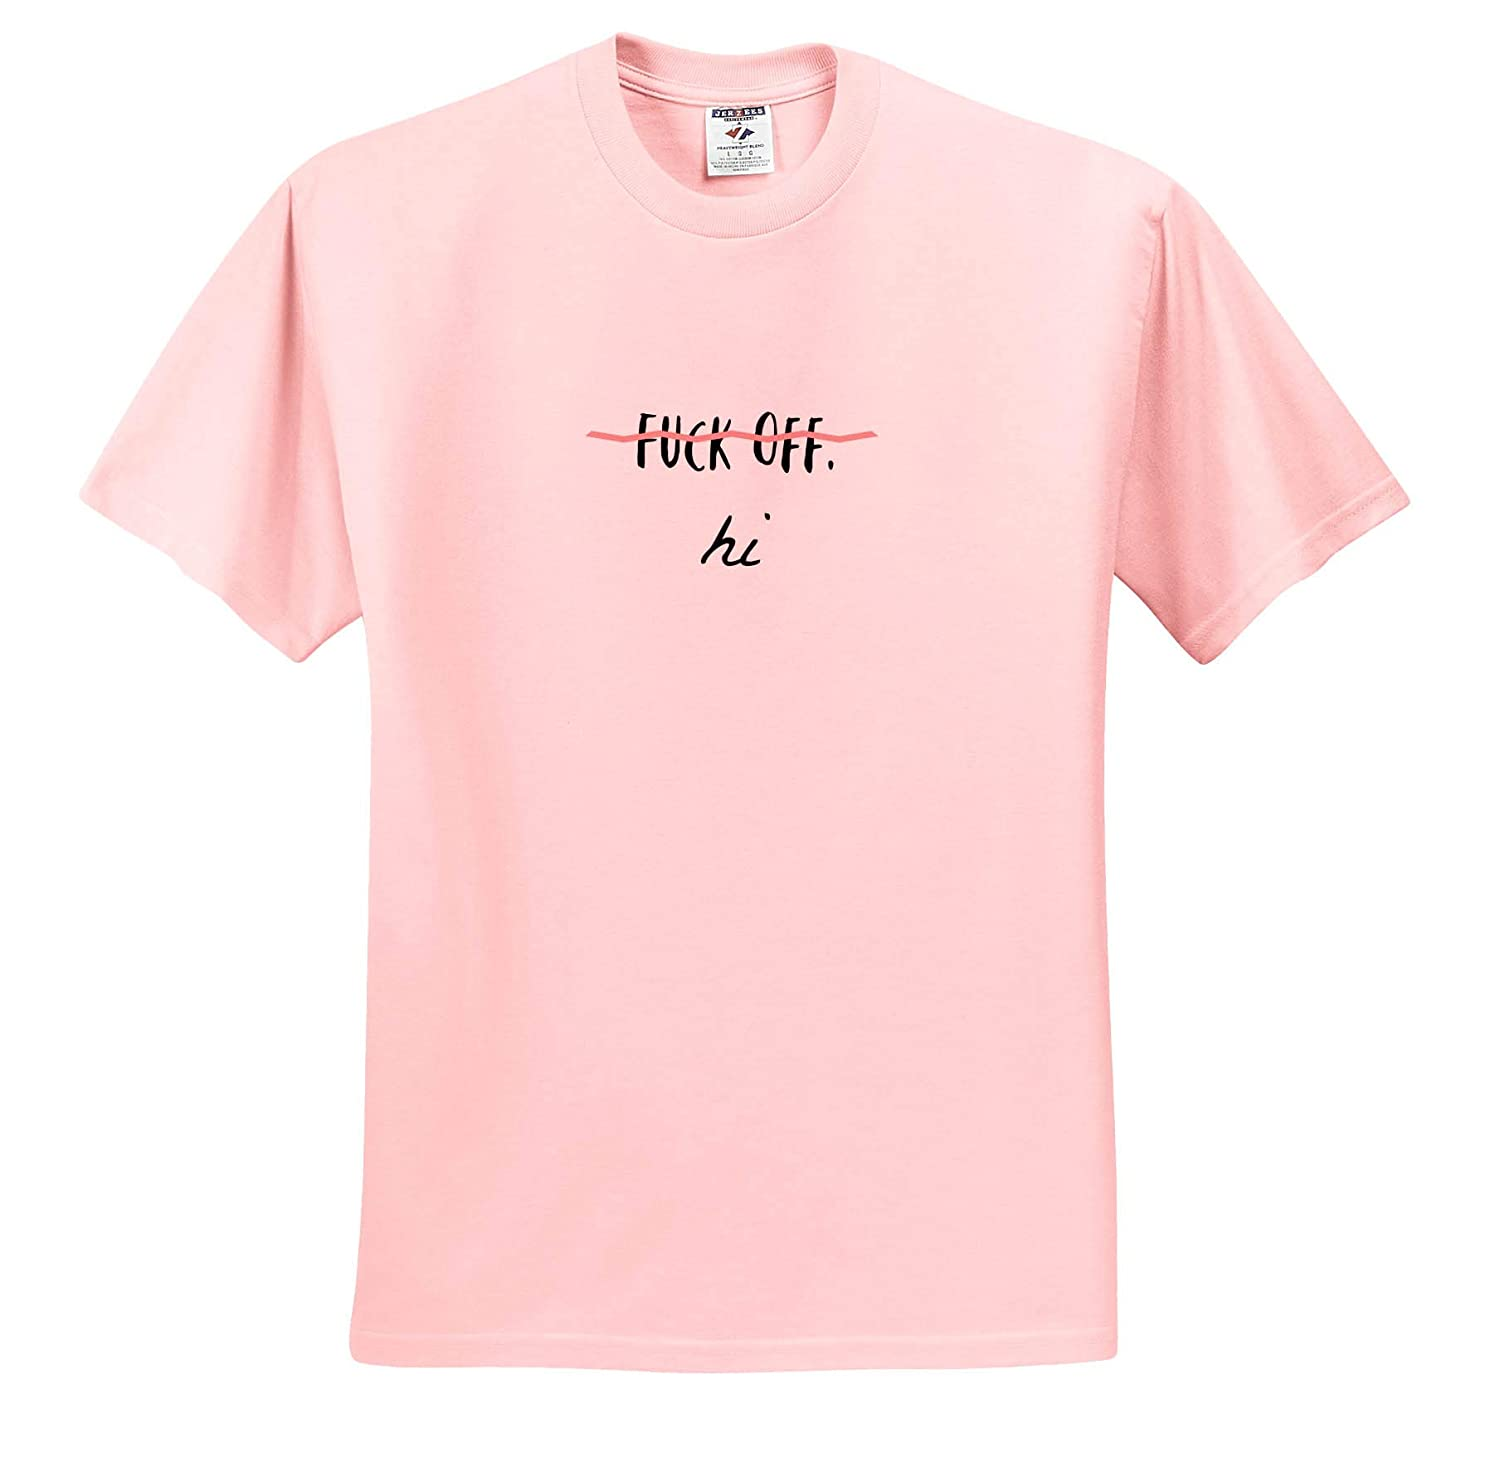 Image of Fuck Off Hi ts/_311335 Adult T-Shirt XL - Quote 3dRose Nicole R